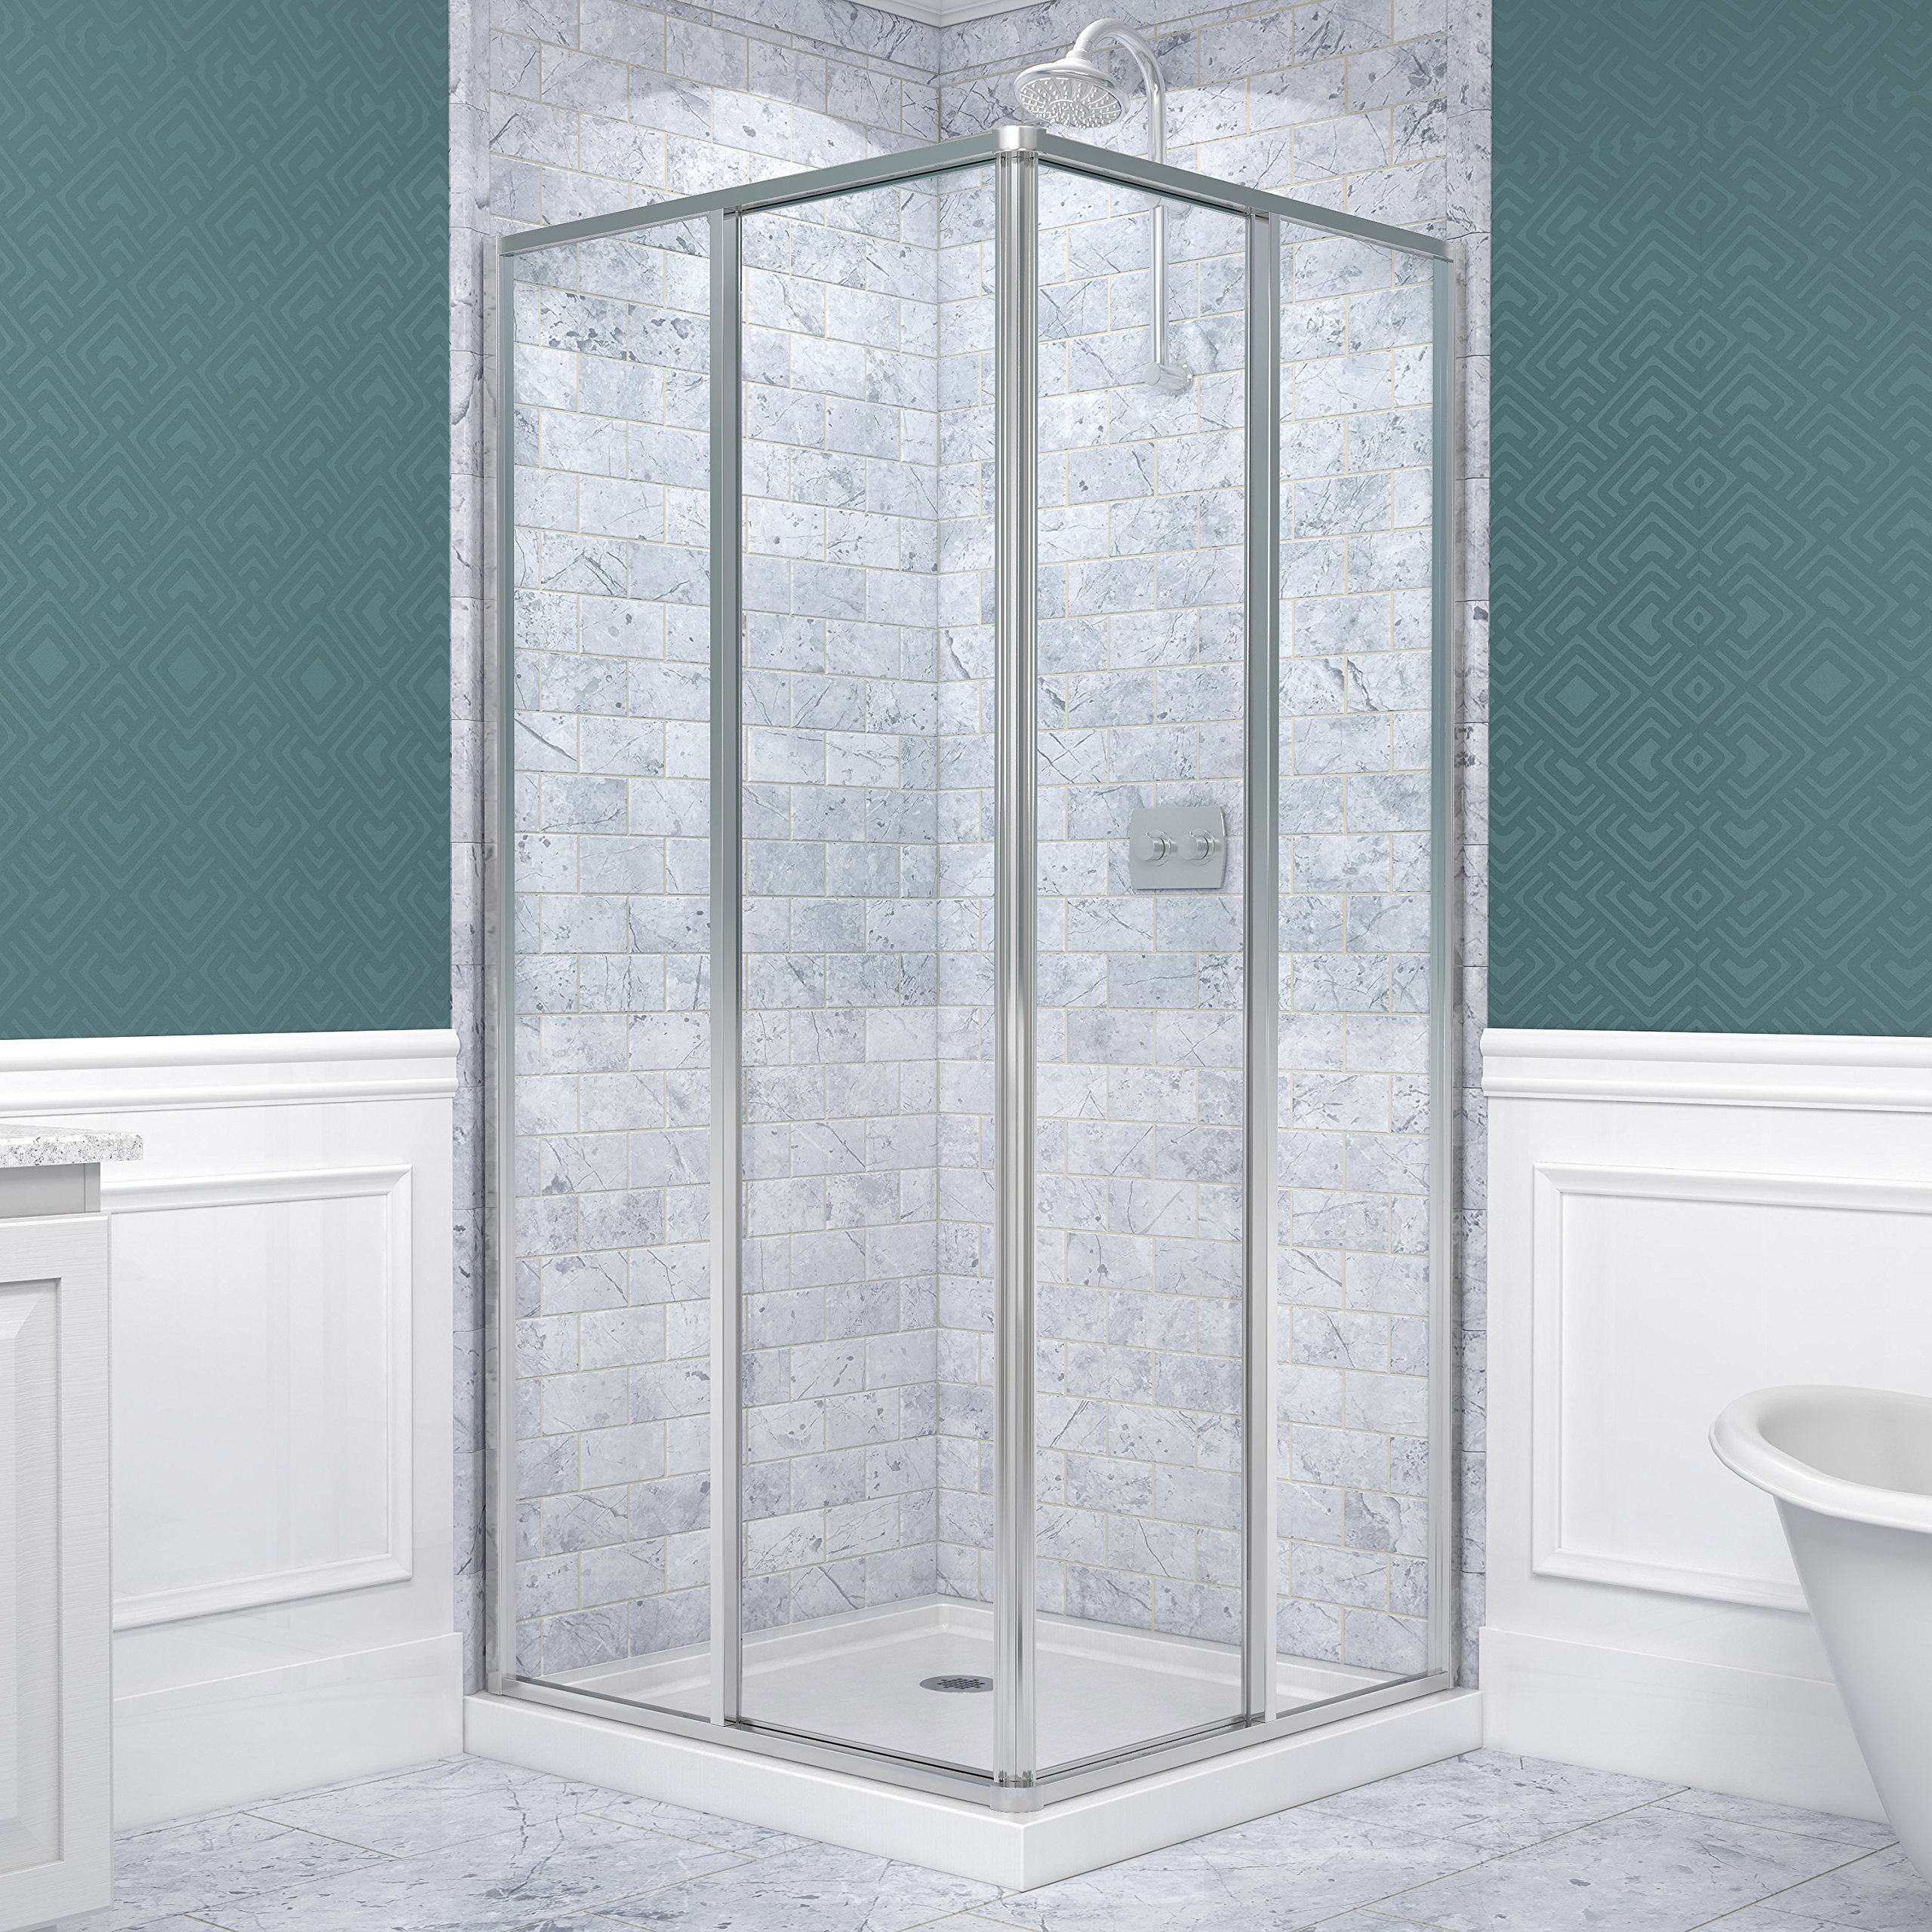 DreamLine Cornerview 34 1/2 in. D x 34 1/2 in. W, Framed Sliding Shower Enclosure, 5/32'' Glass, Chrome Finish by DreamLine